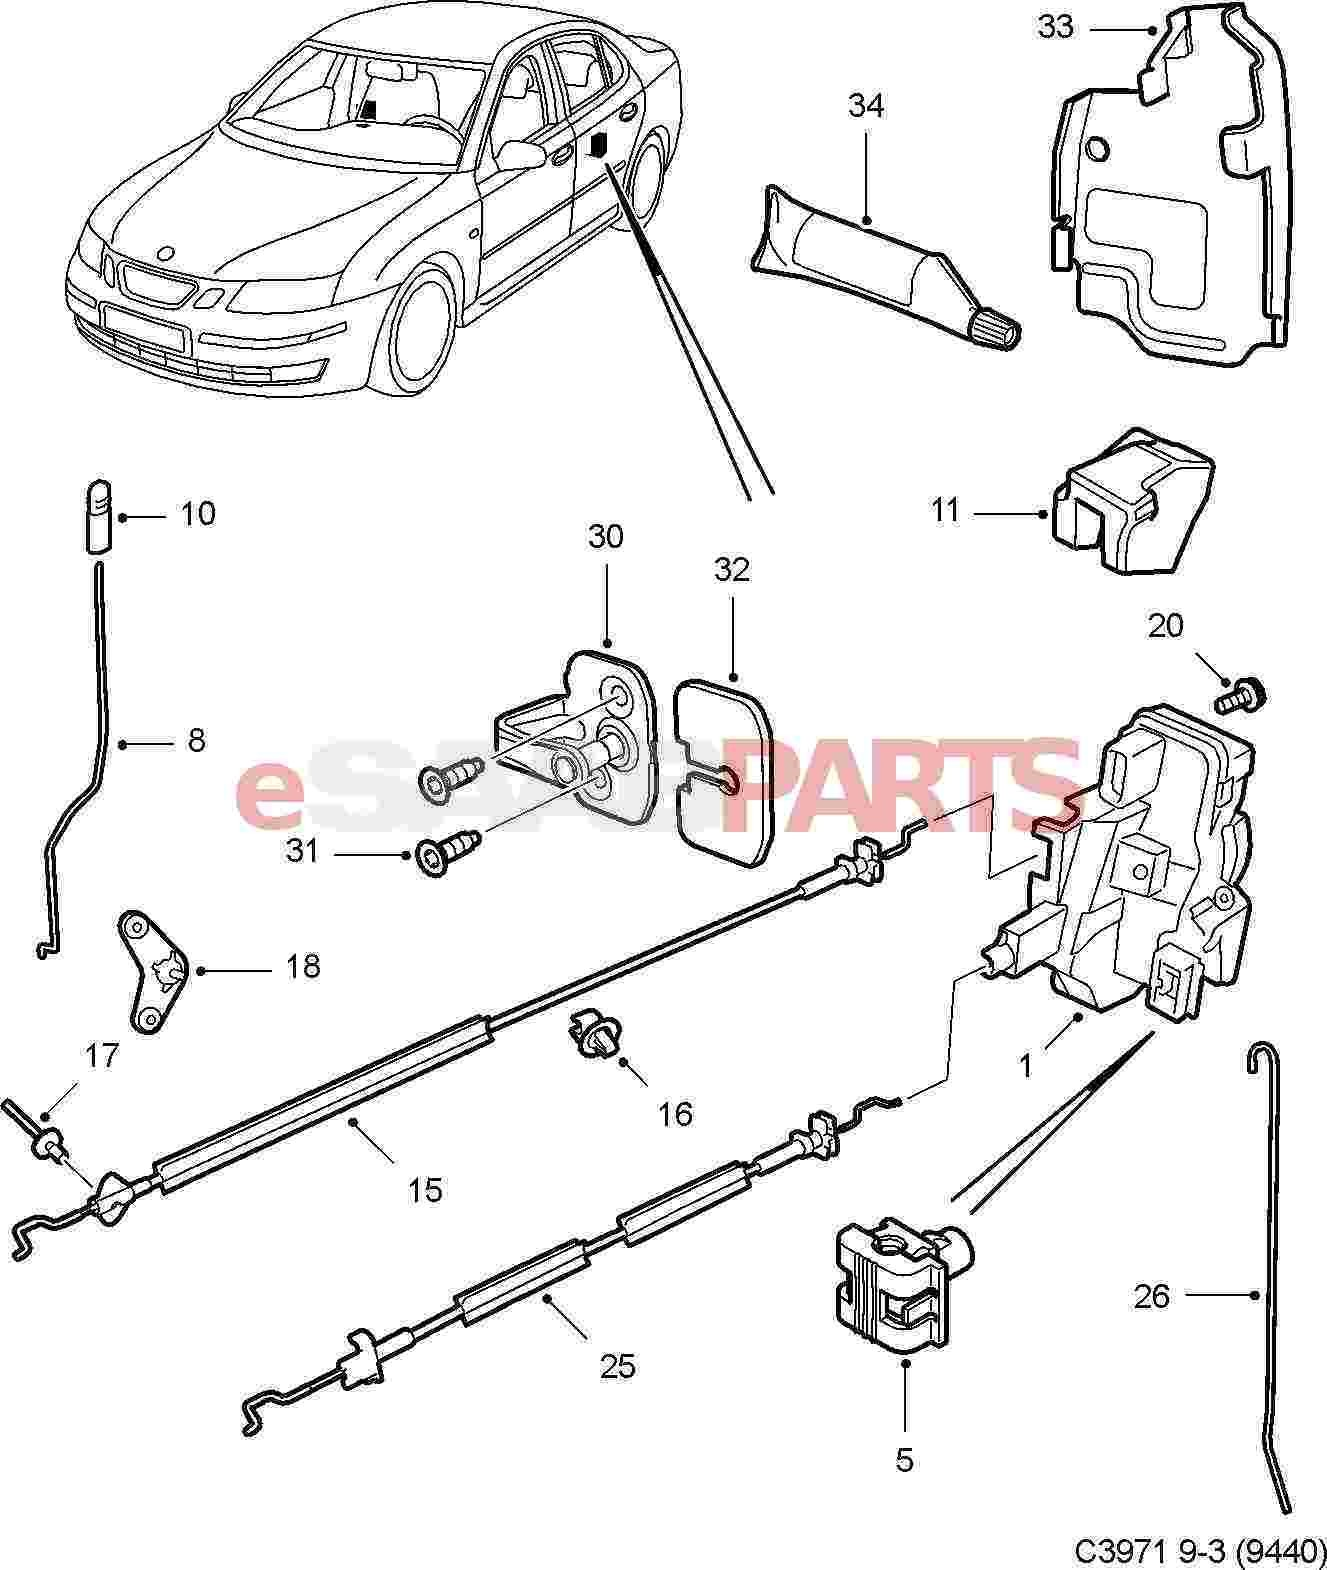 Car Door Lock Parts Diagram My Wiring Full Size Of Amazing Inspirations Saab Genuine